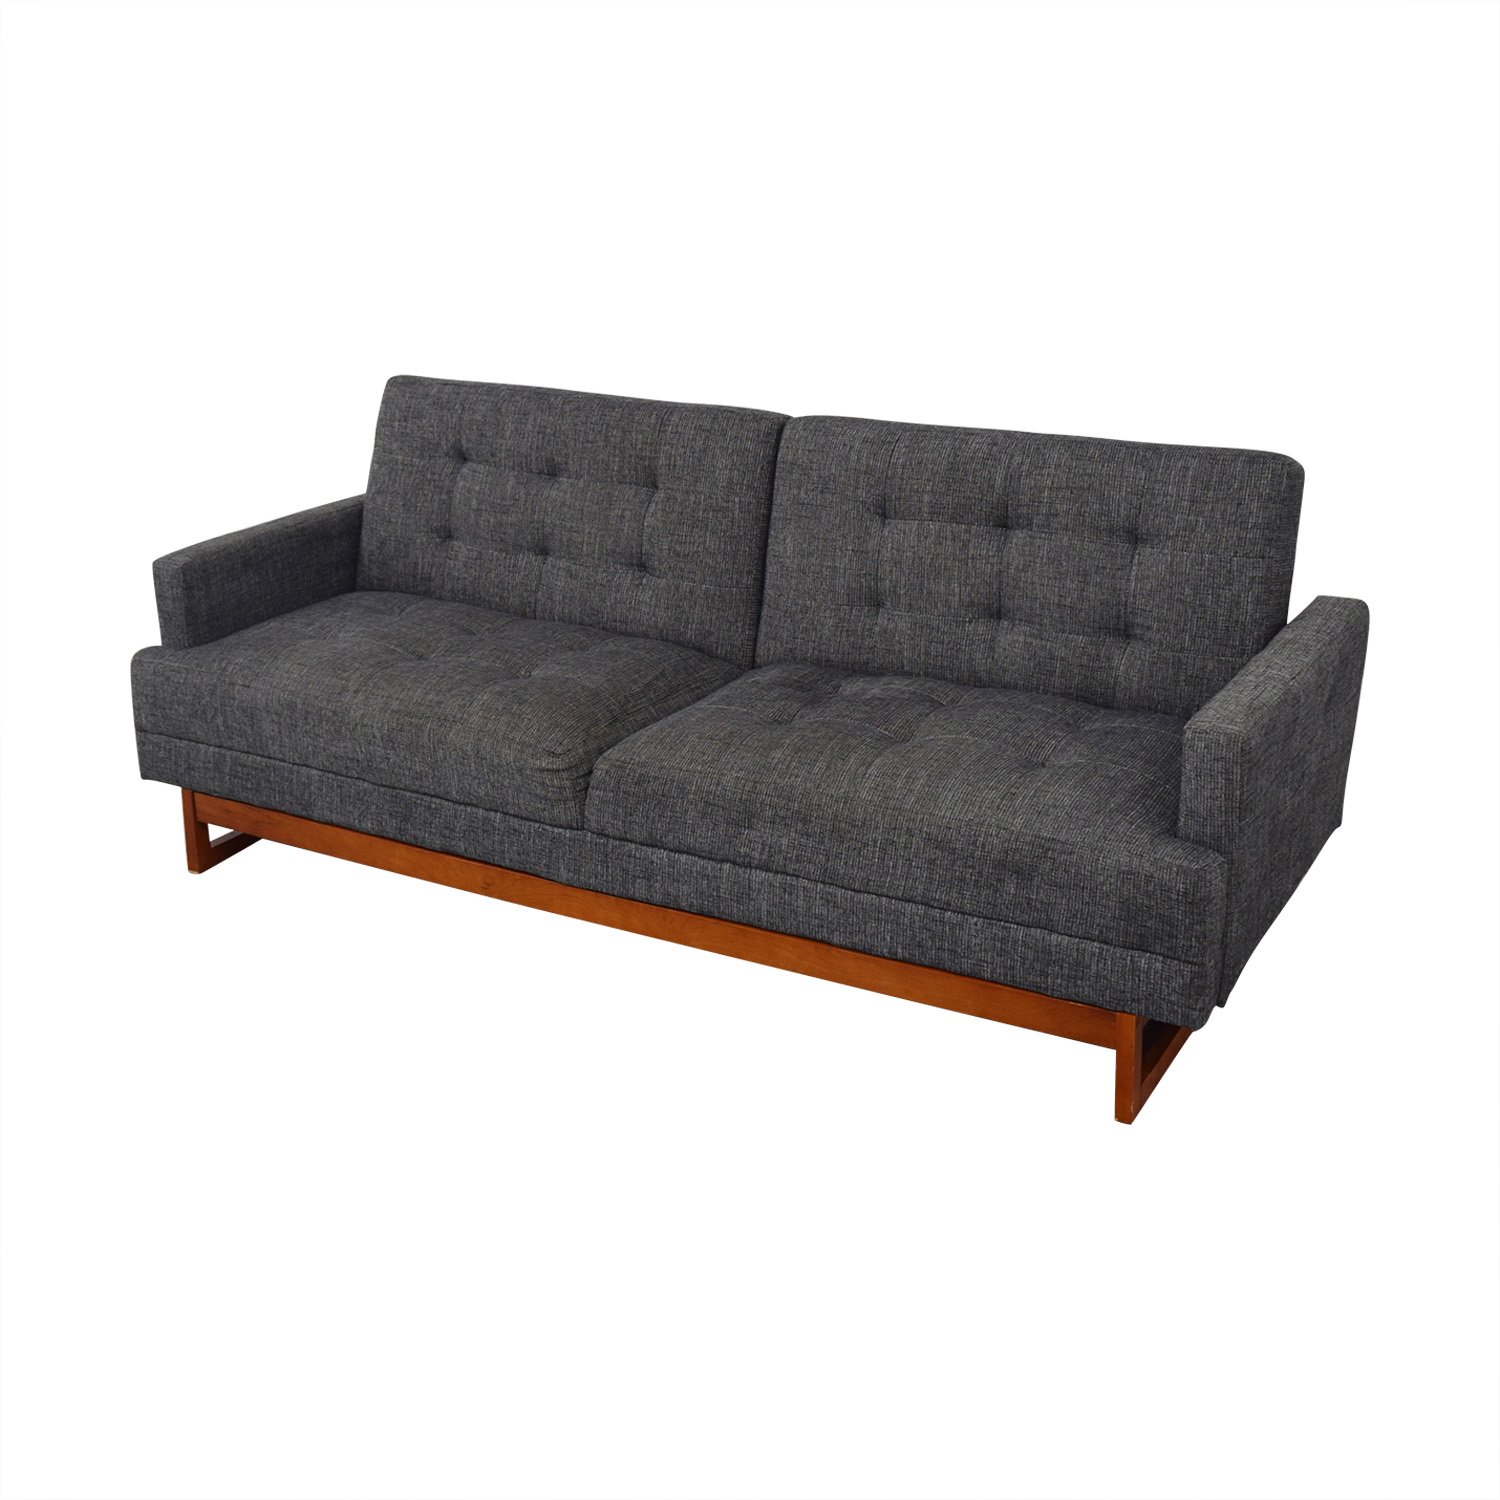 buy Urban Outfitters Urban Outfitters Either Or Sofa Bed online